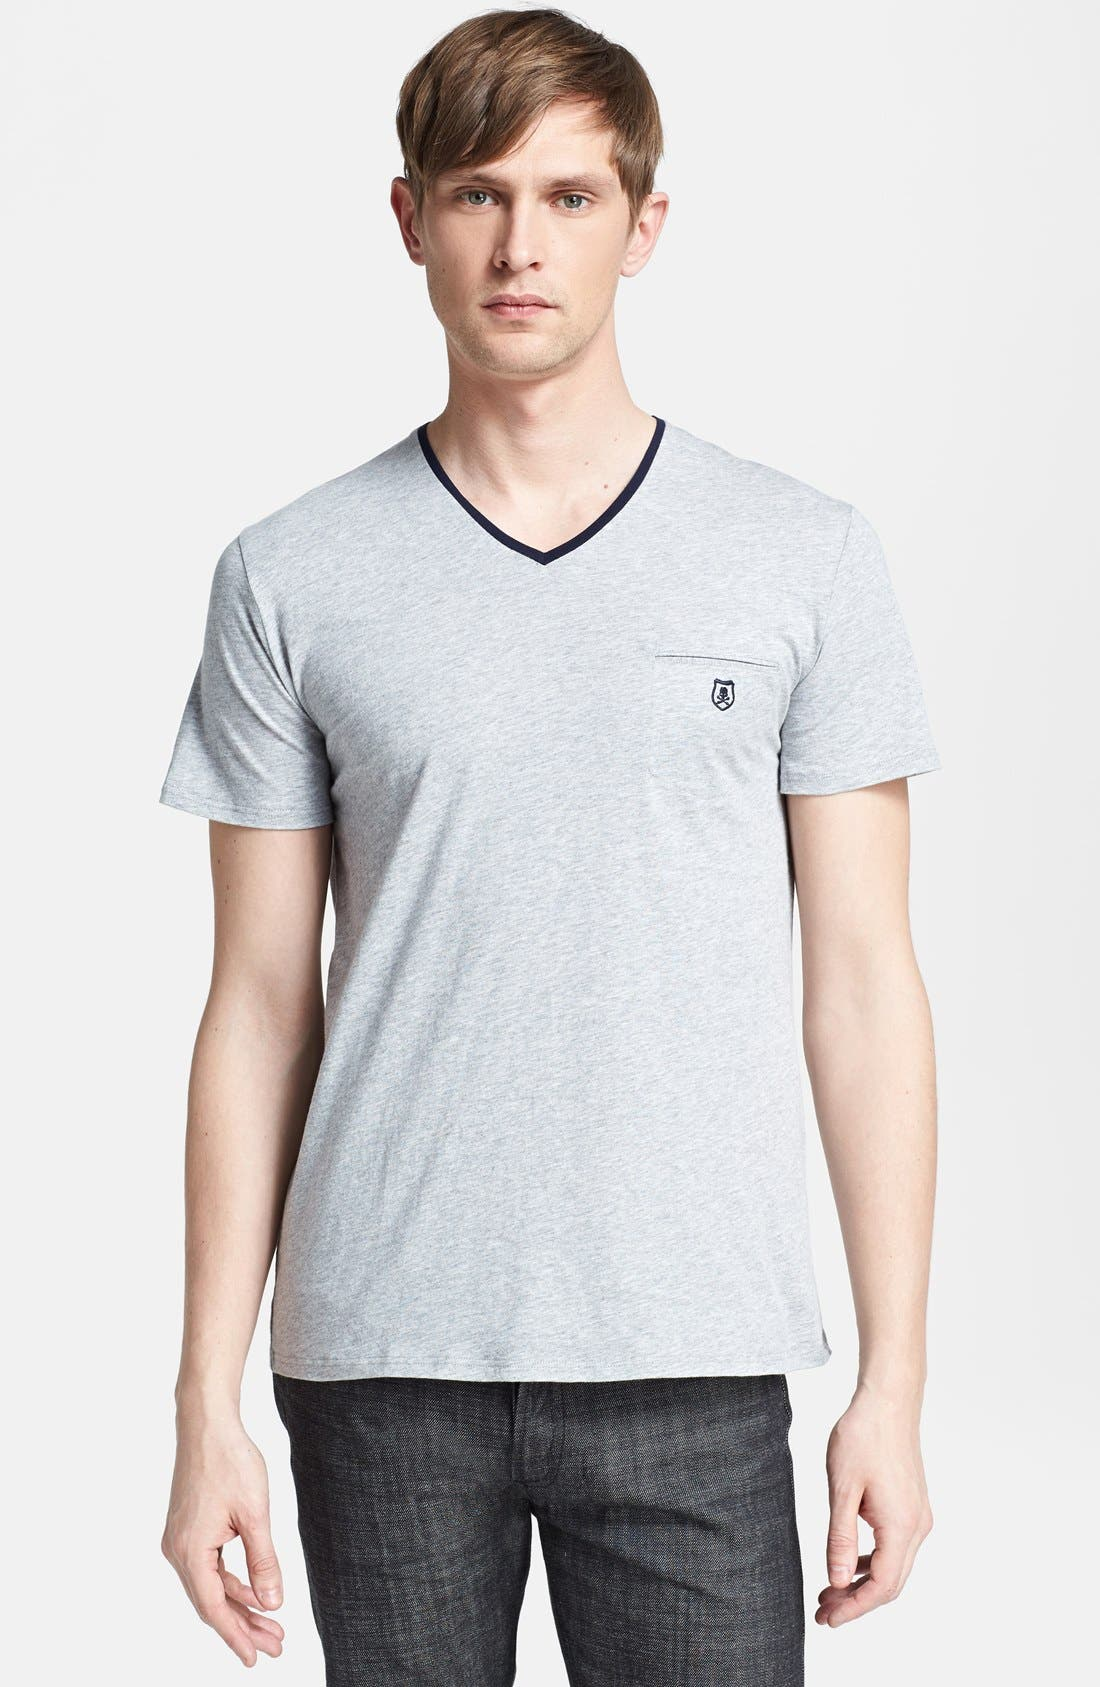 Main Image - The Kooples Embroidered Pocket V-Neck T-Shirt